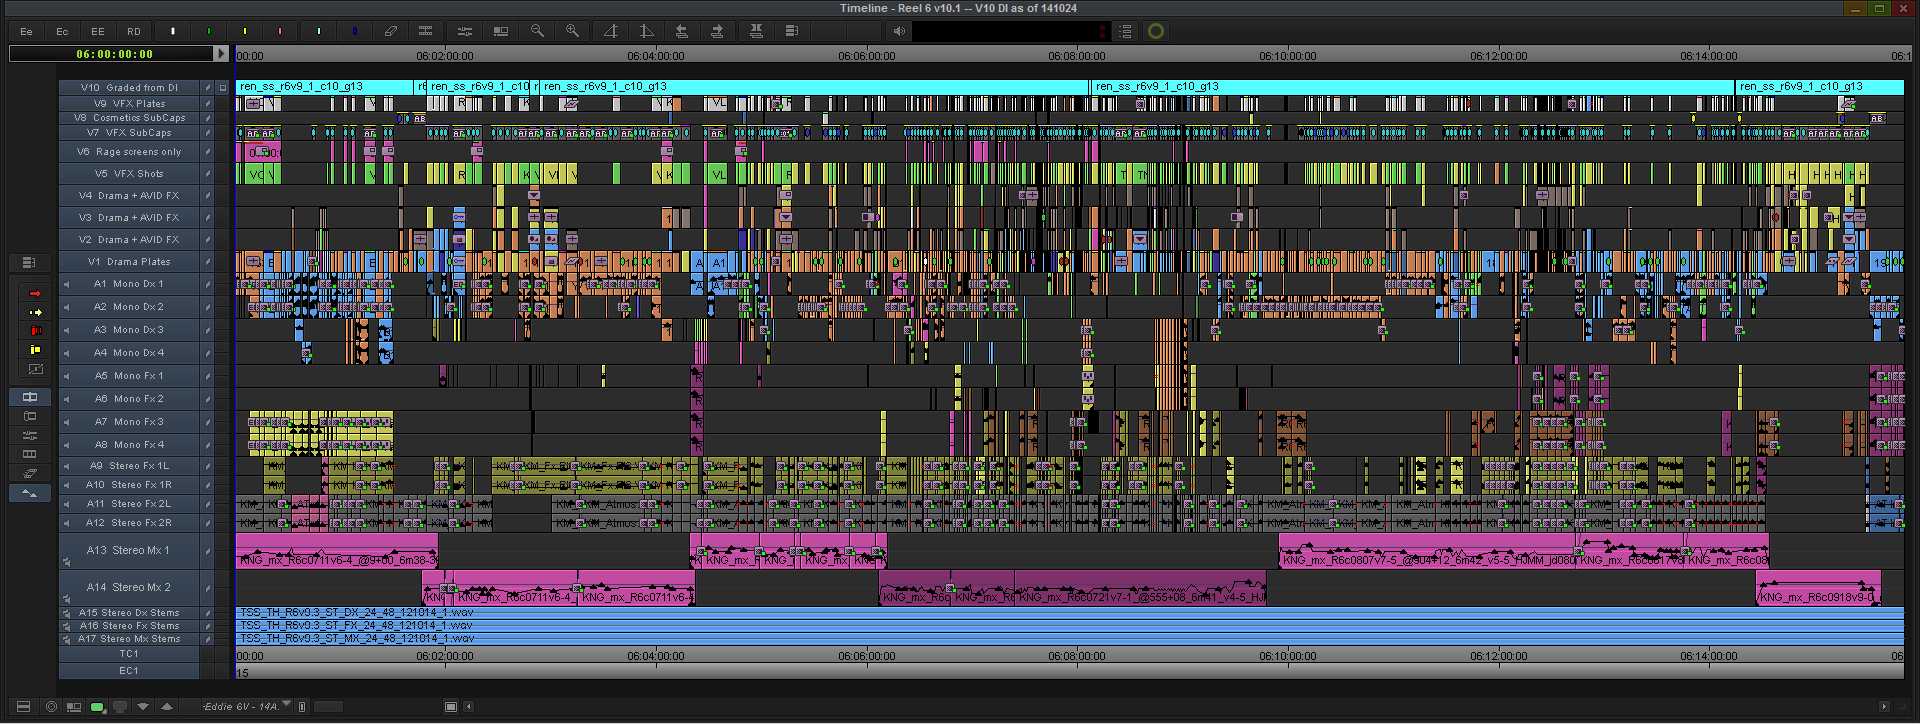 Kingsman-Final-Reel-6-Avid-MC-Timeline